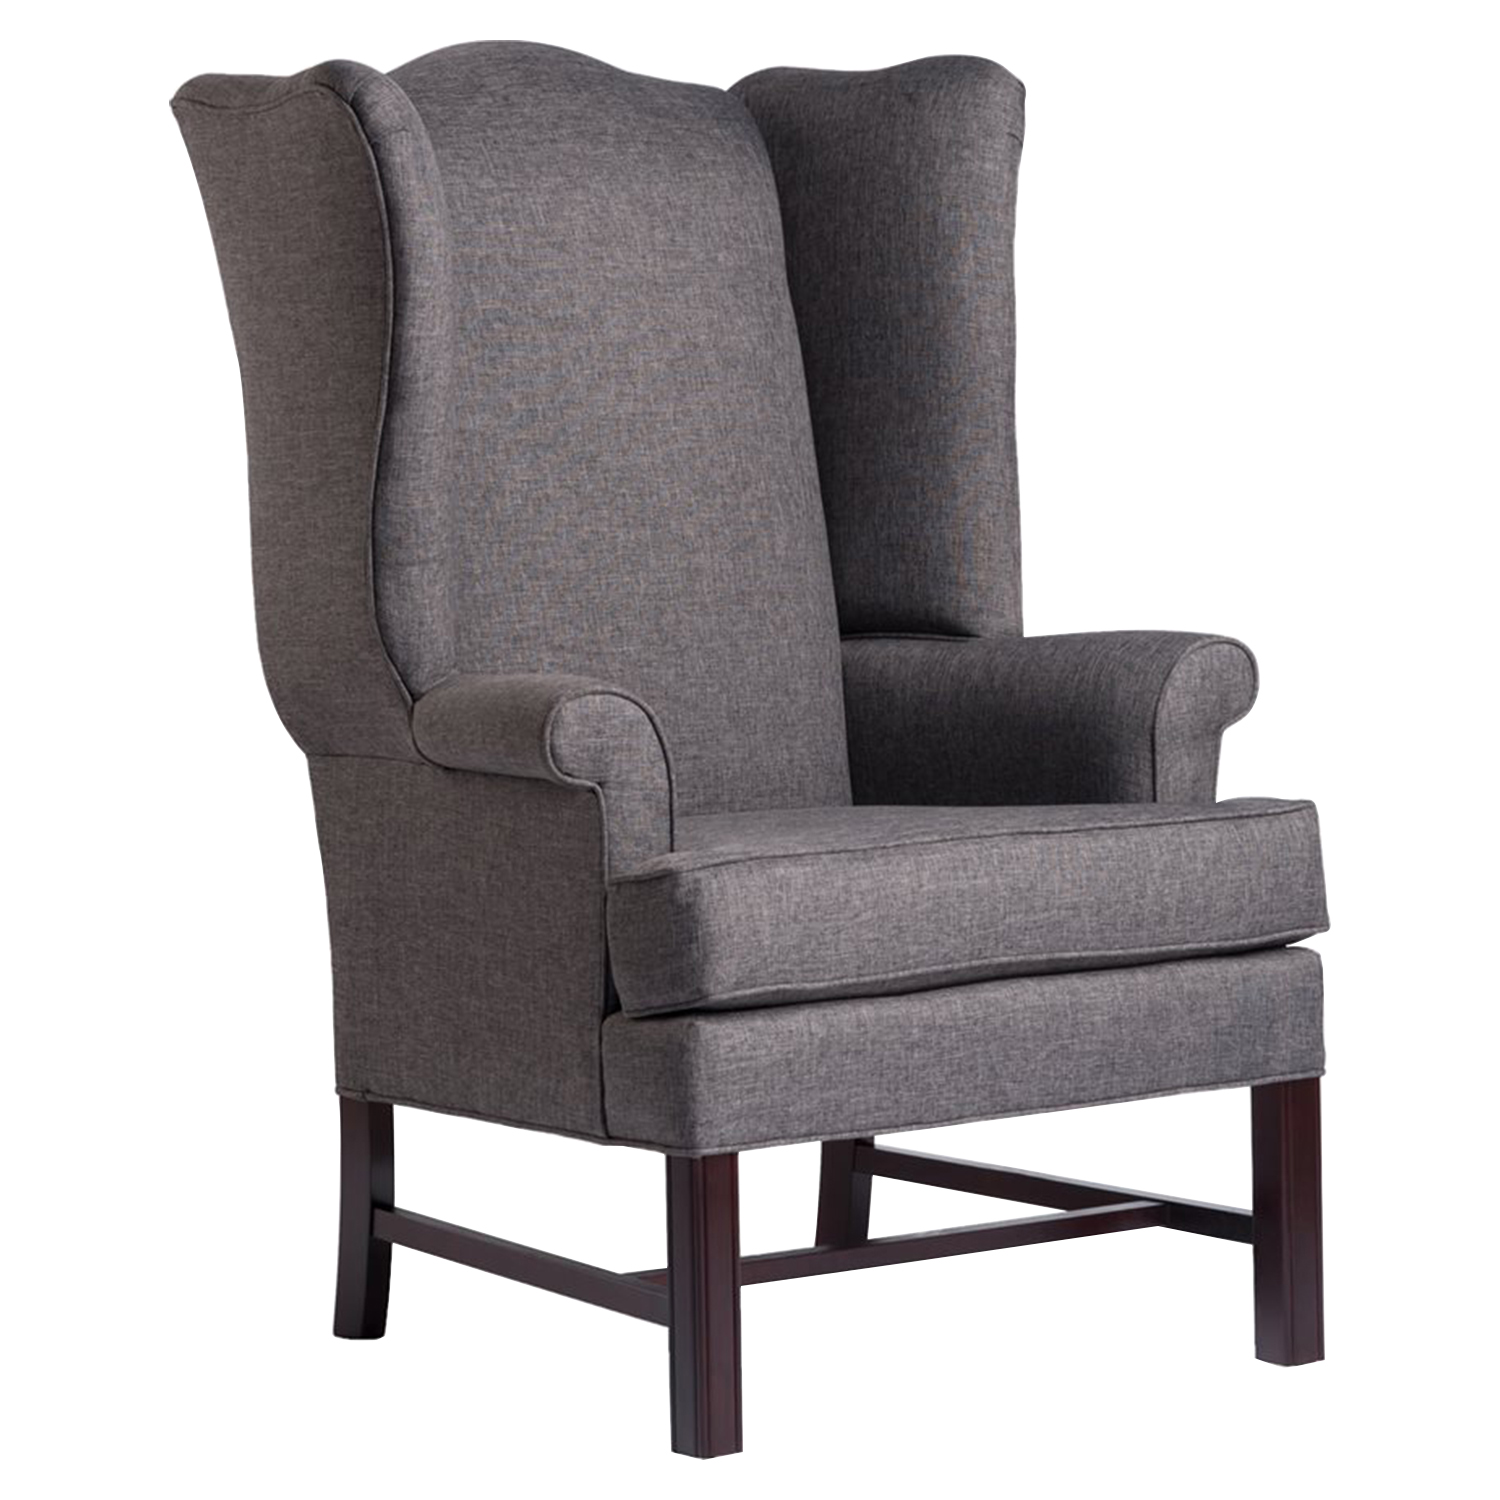 Chippendale Wingback Chair   Jitterbug Gray, Cherry   CP 8000 02 ...